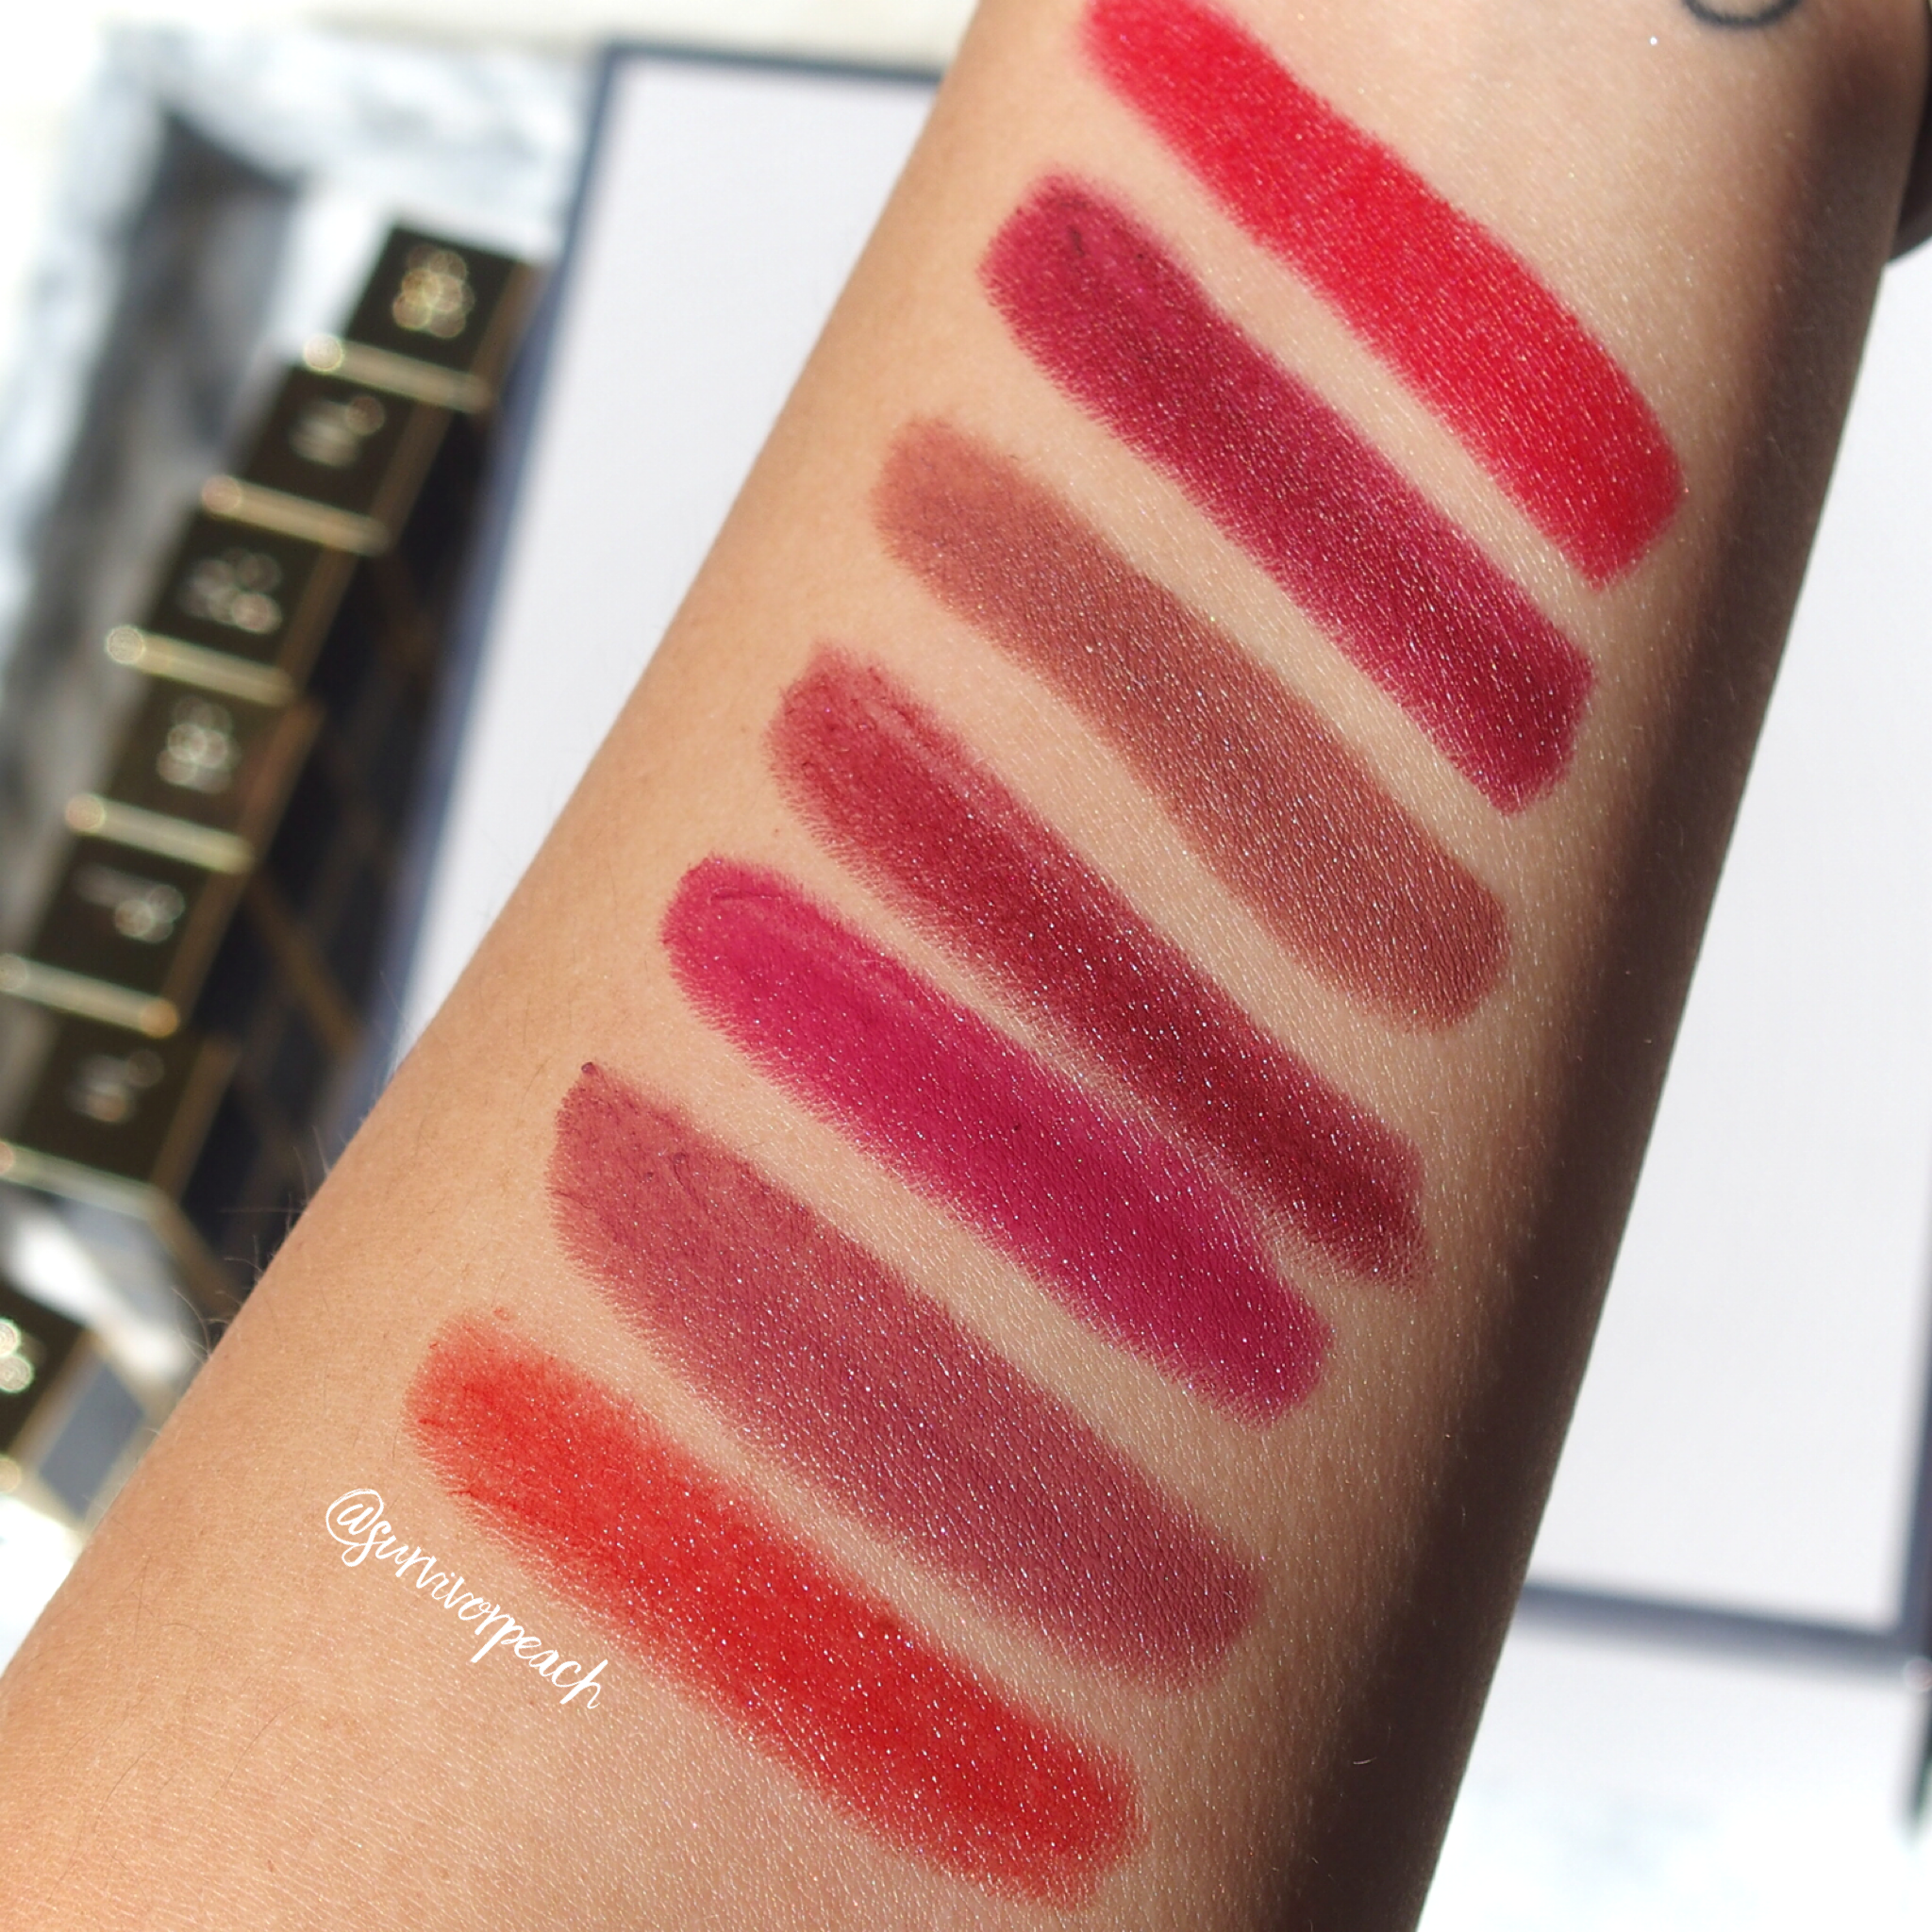 Swatches of the Tom Ford Lips and Boys in Dylan, Nicholas, Christopher, Inigo, Jack, Mitchell, Warren